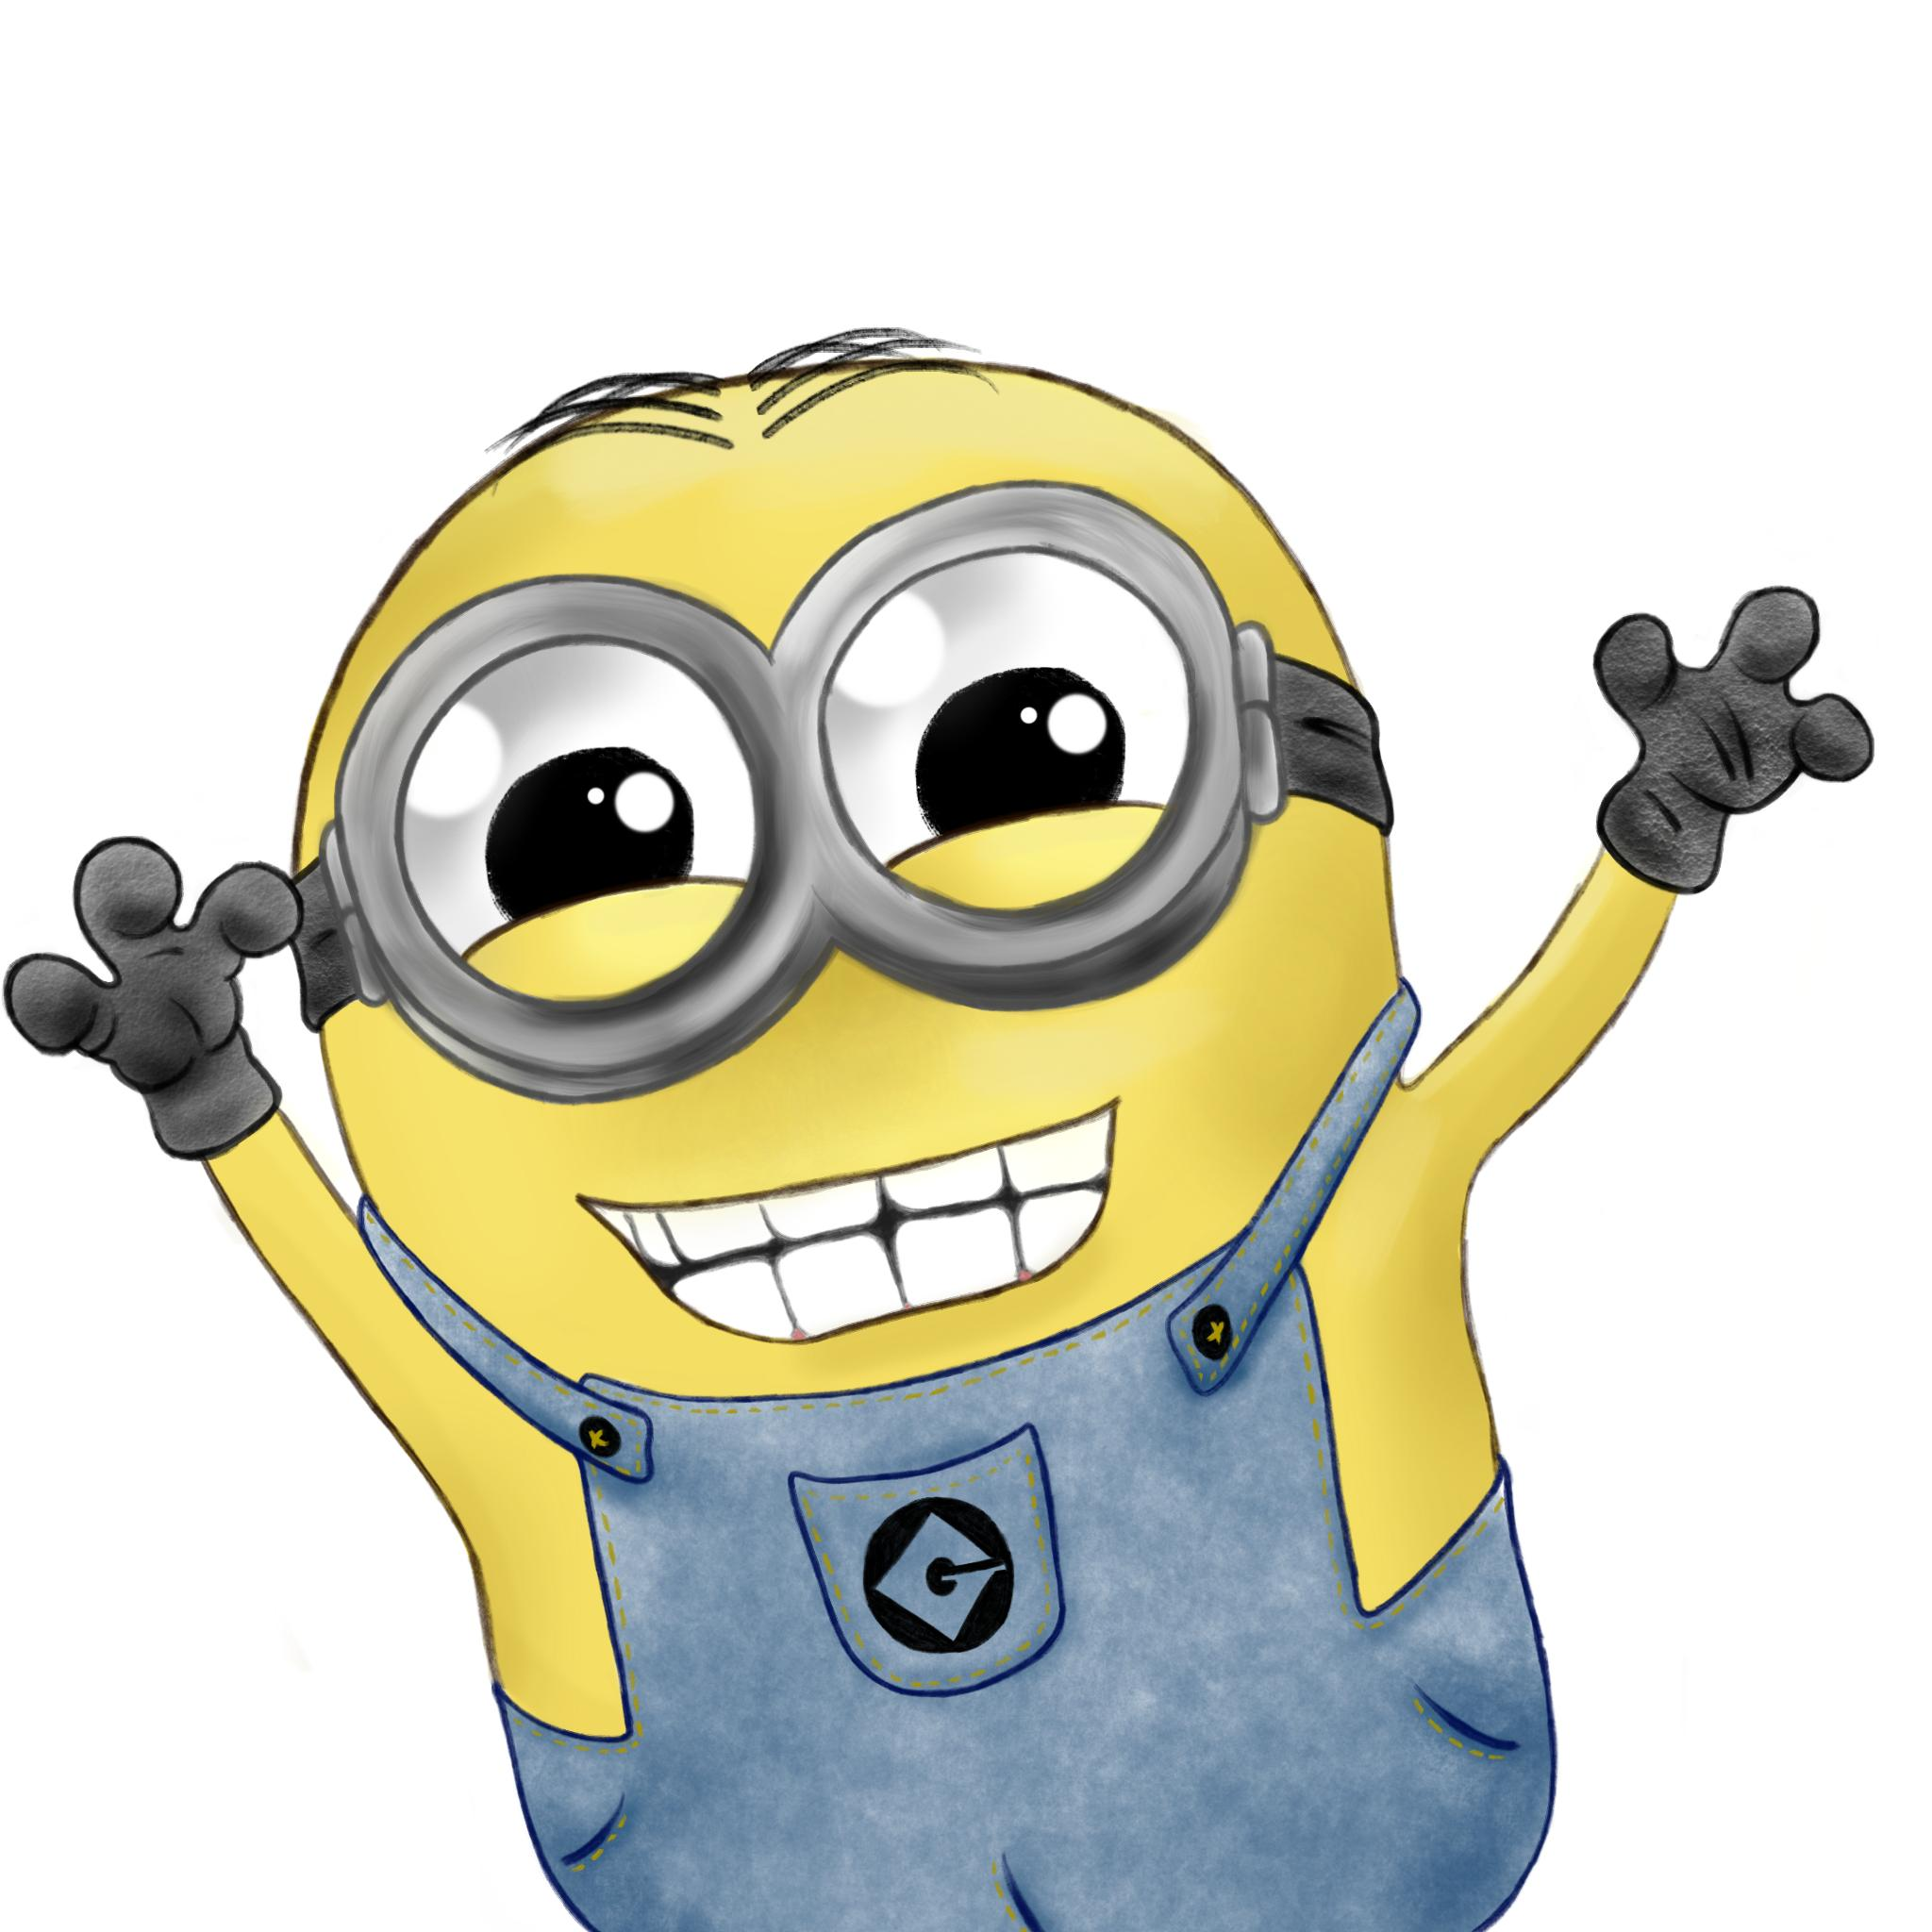 Tumblr iphone wallpaper minions - Ipad Ipad 2 Ipad Mini 2048x2048 F R Ipad 3 The New Ipad Ipad